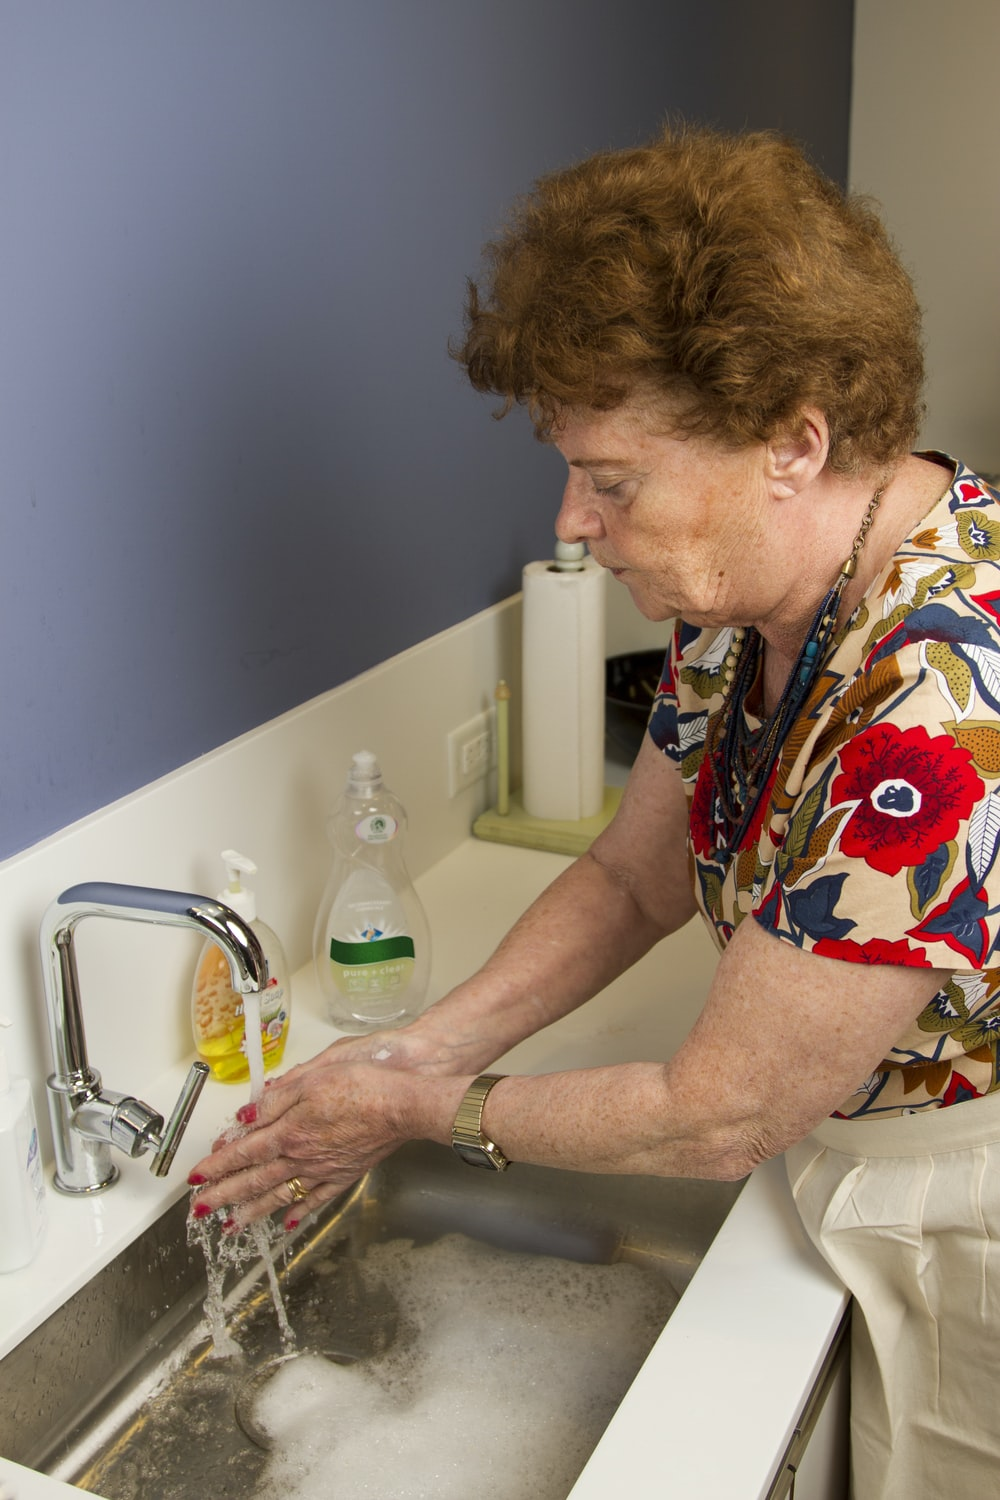 woman in red yellow and blue floral shirt sitting on white ceramic sink